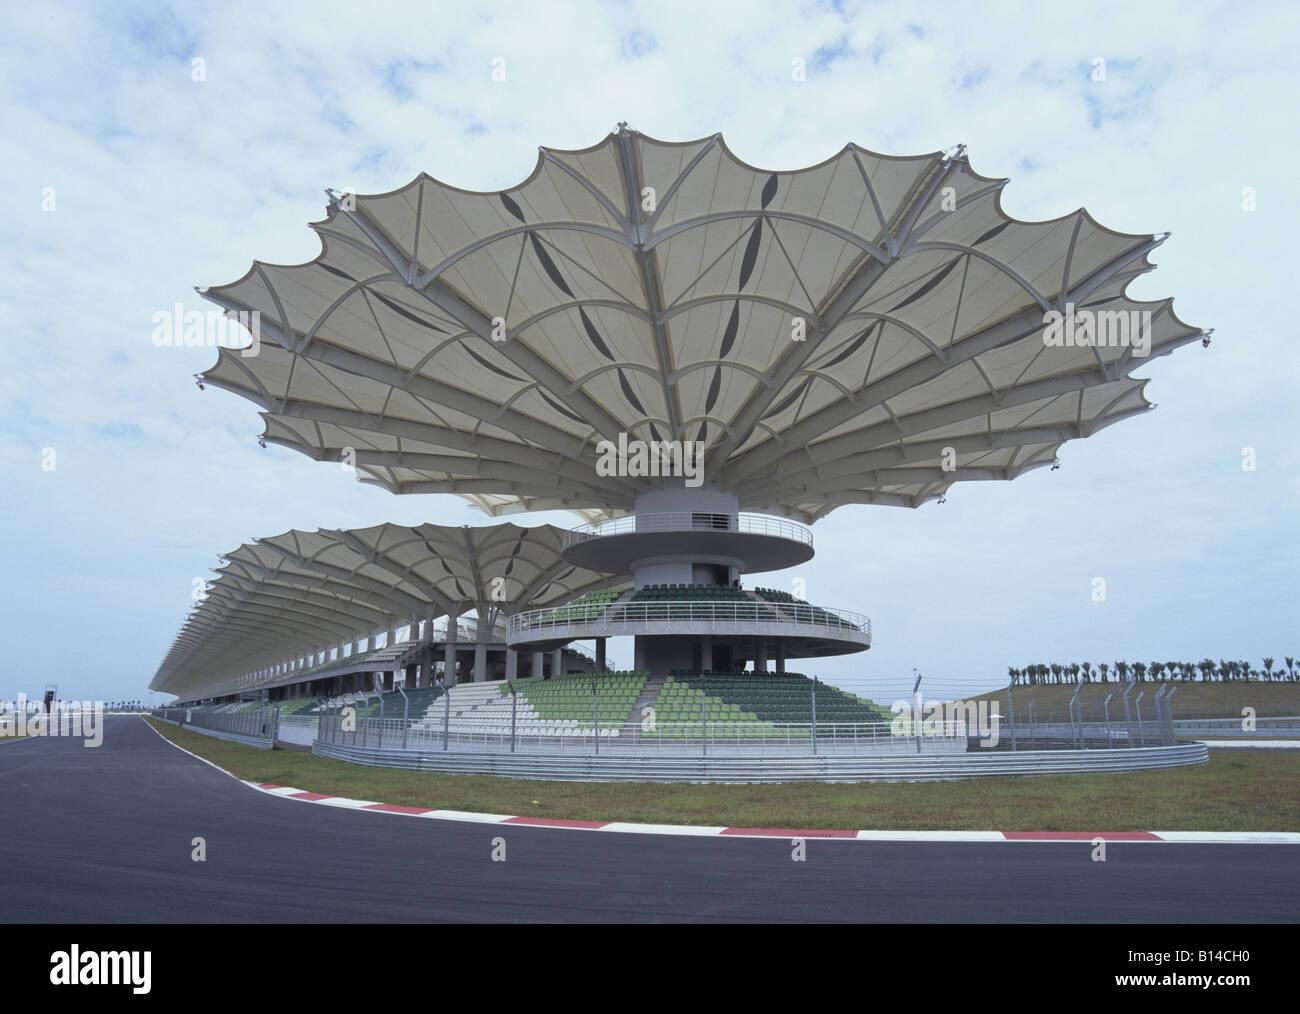 architecture, stadiums, Sepang International Circuit, racing track with covered stands, Additional-Rights-Clearance - Stock Image